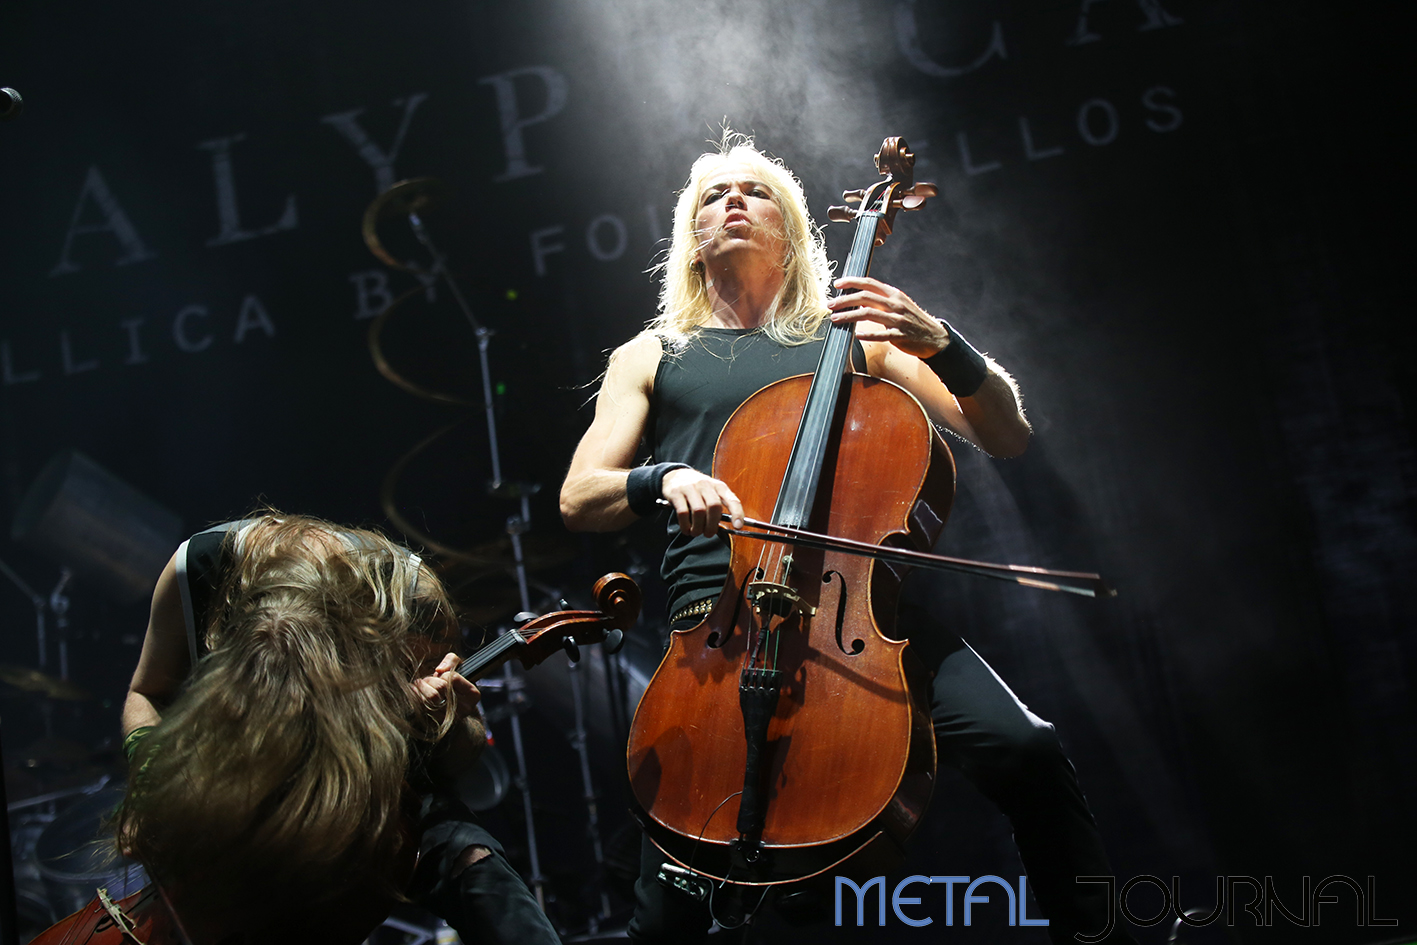 apocalyptica - leyendas del rock 2019 metal journal pic 1